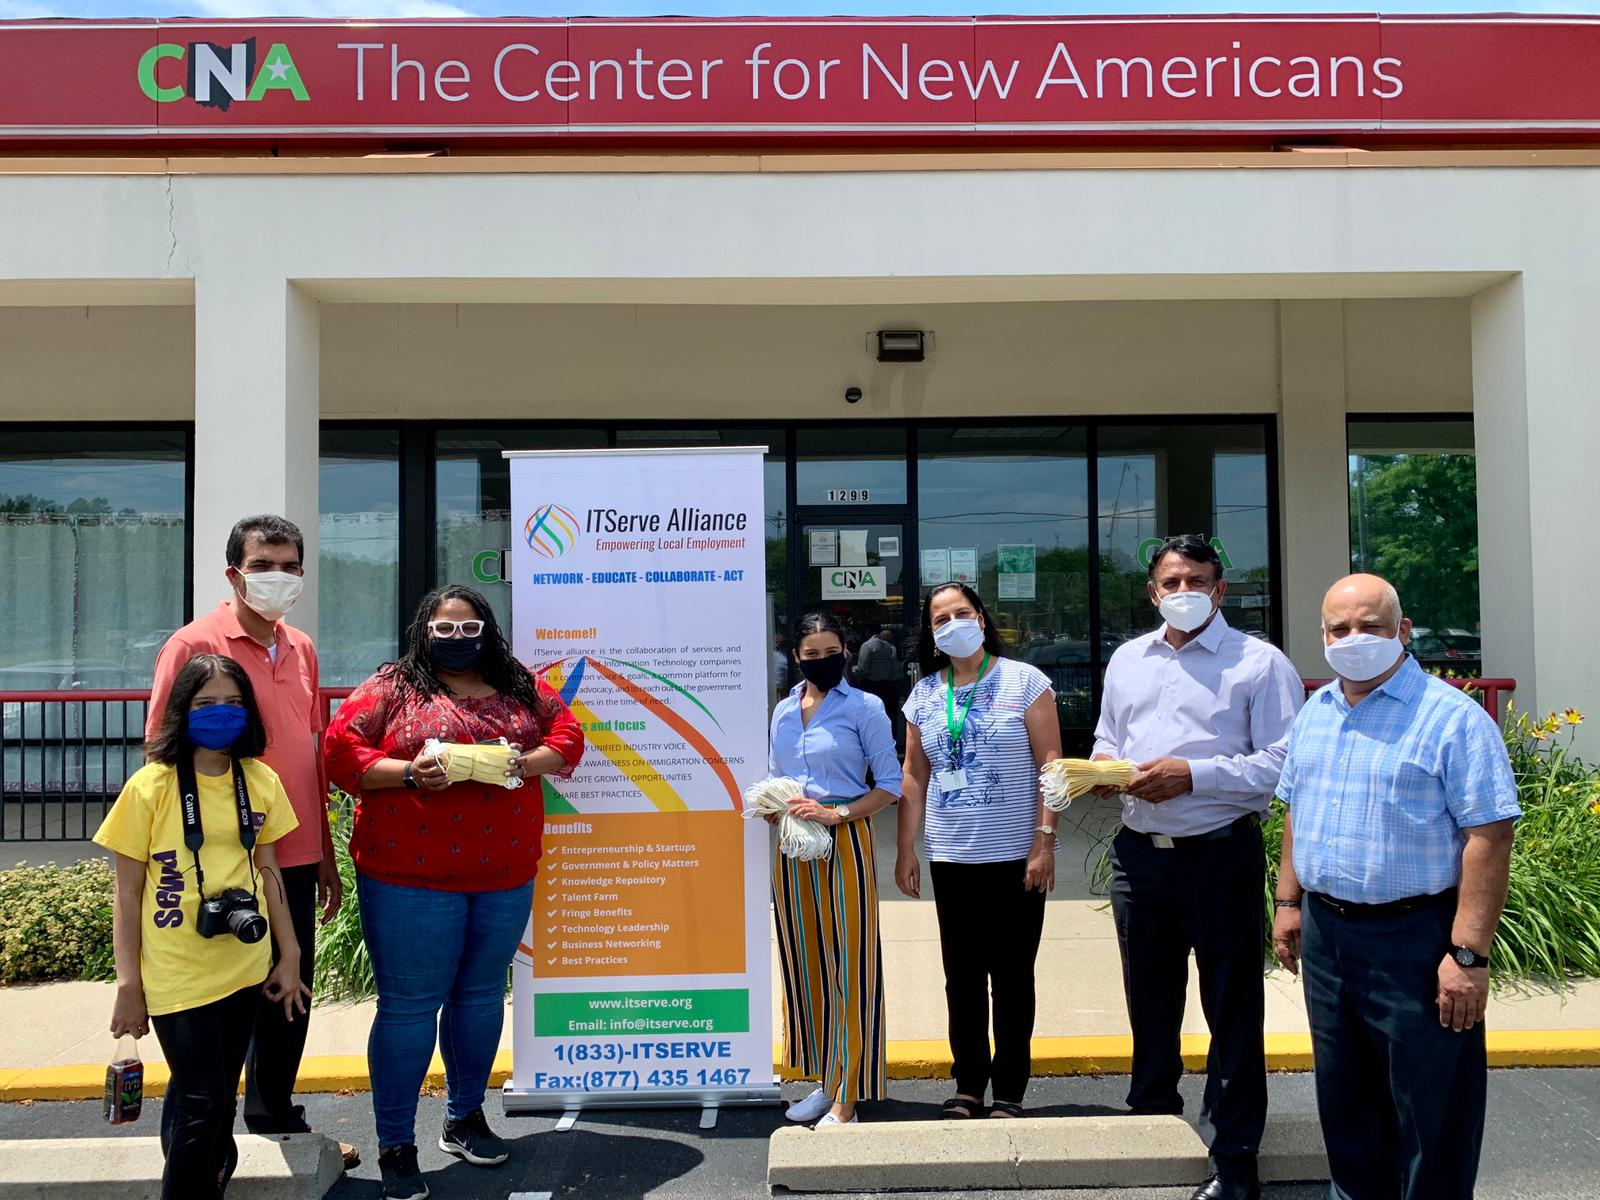 Donated 250 hand sewed reusable masks to The Center for New Americans!